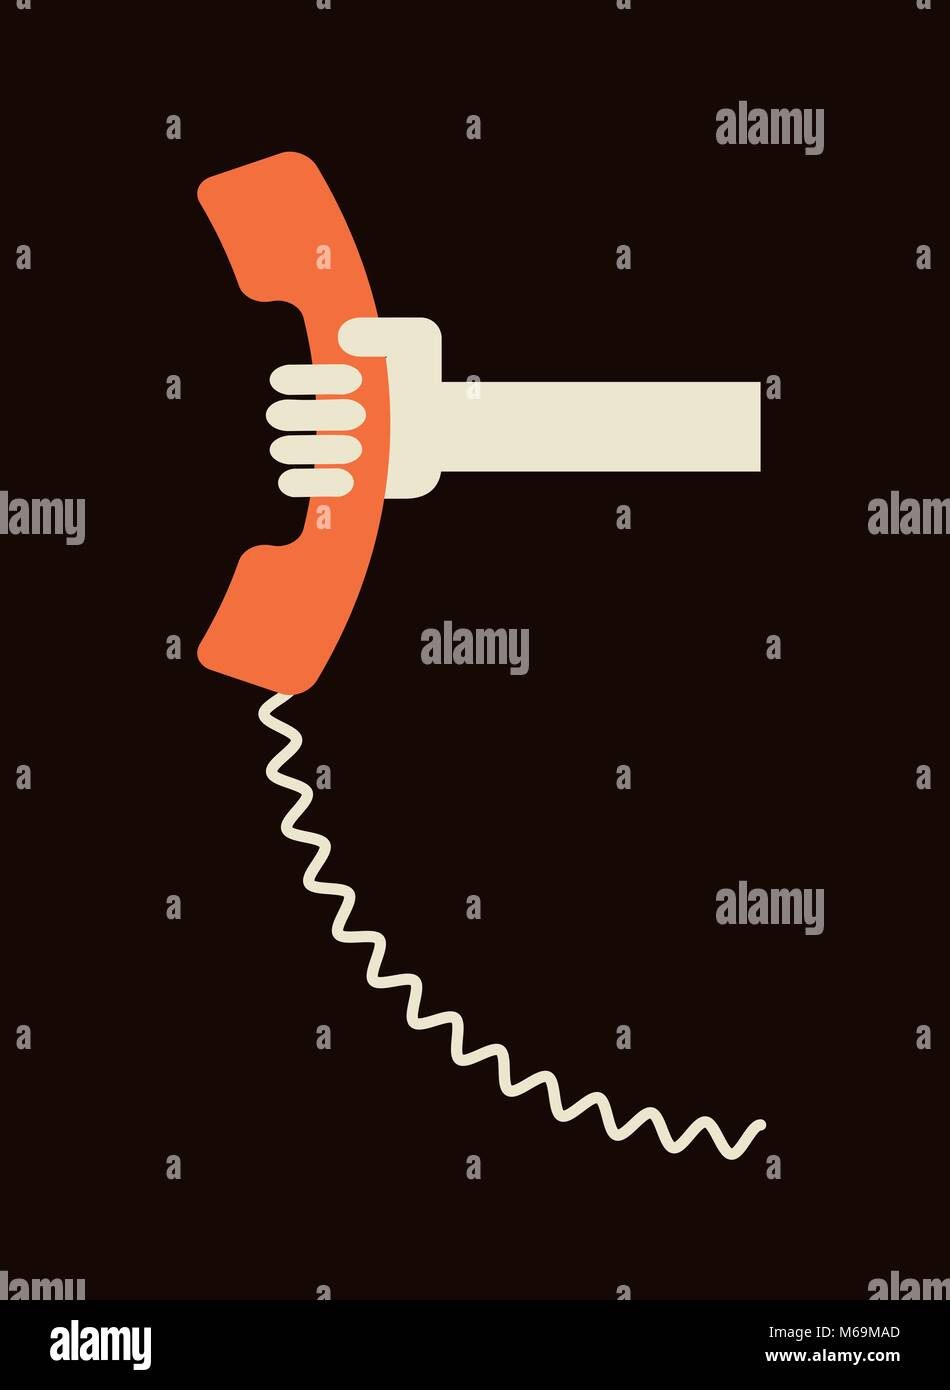 hand holding old telephone receiver - urgent call - communicatioin design template - Stock Image